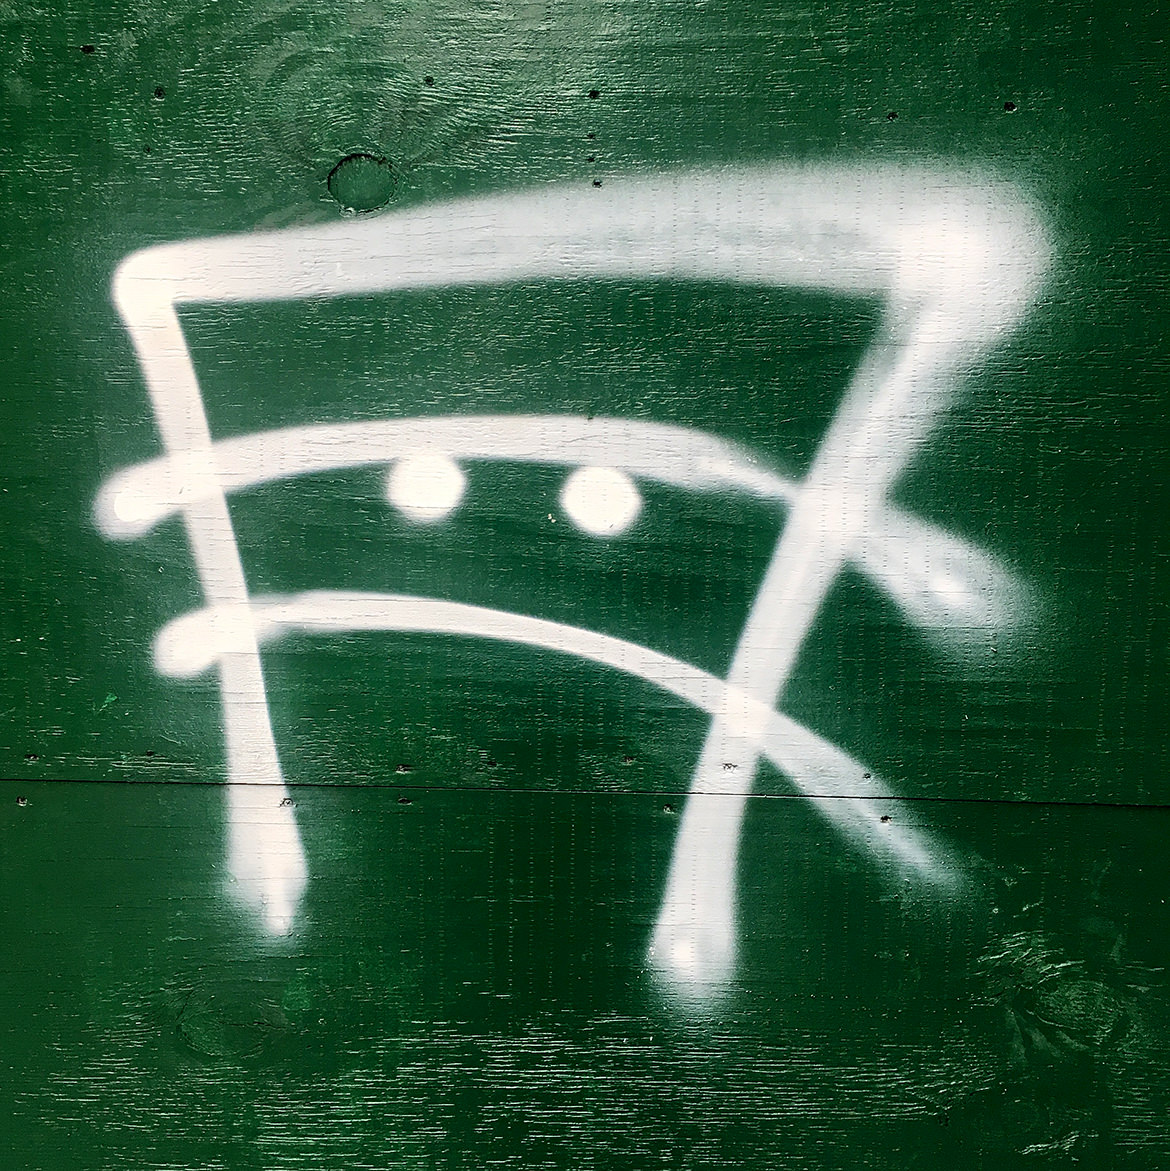 Spraypaint graffiti of a frowning face